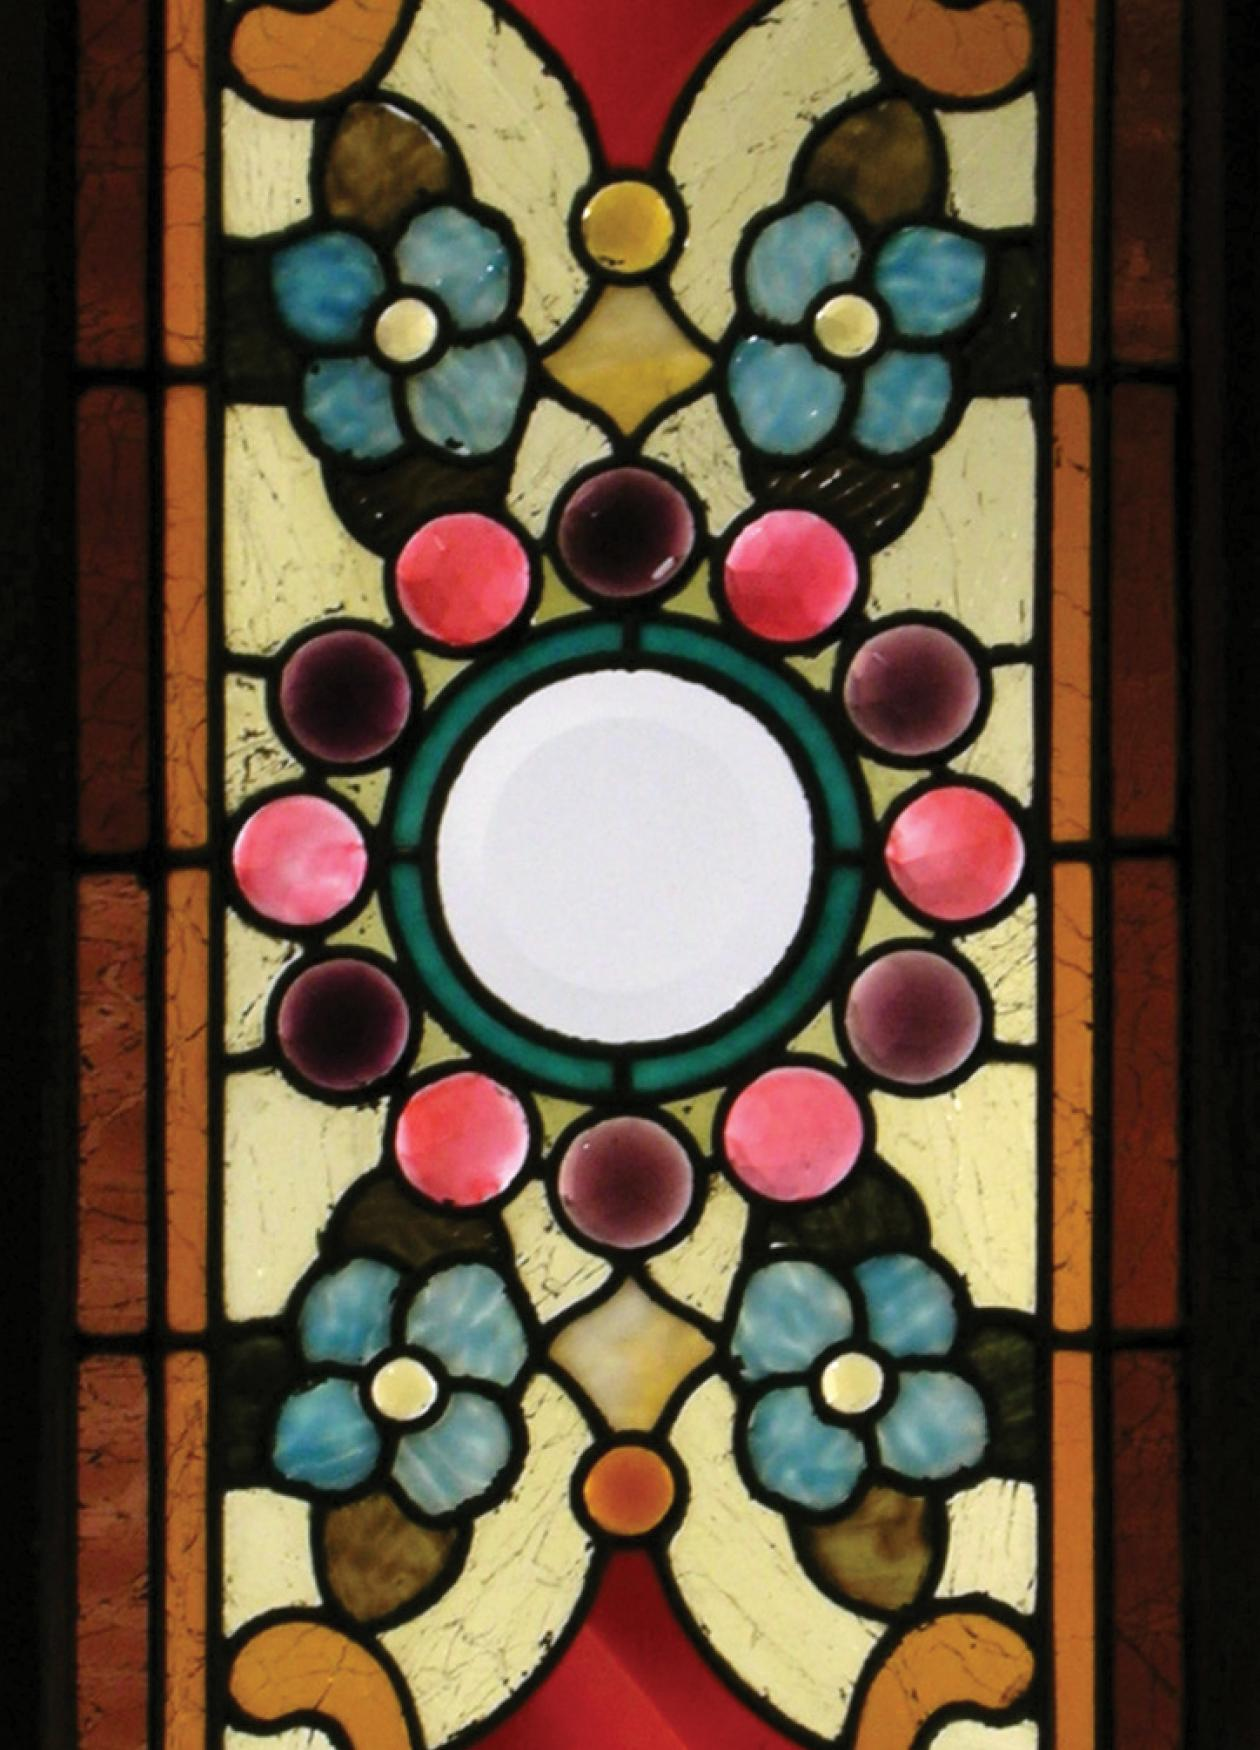 Panel of colorful stained glass in a floral pattern